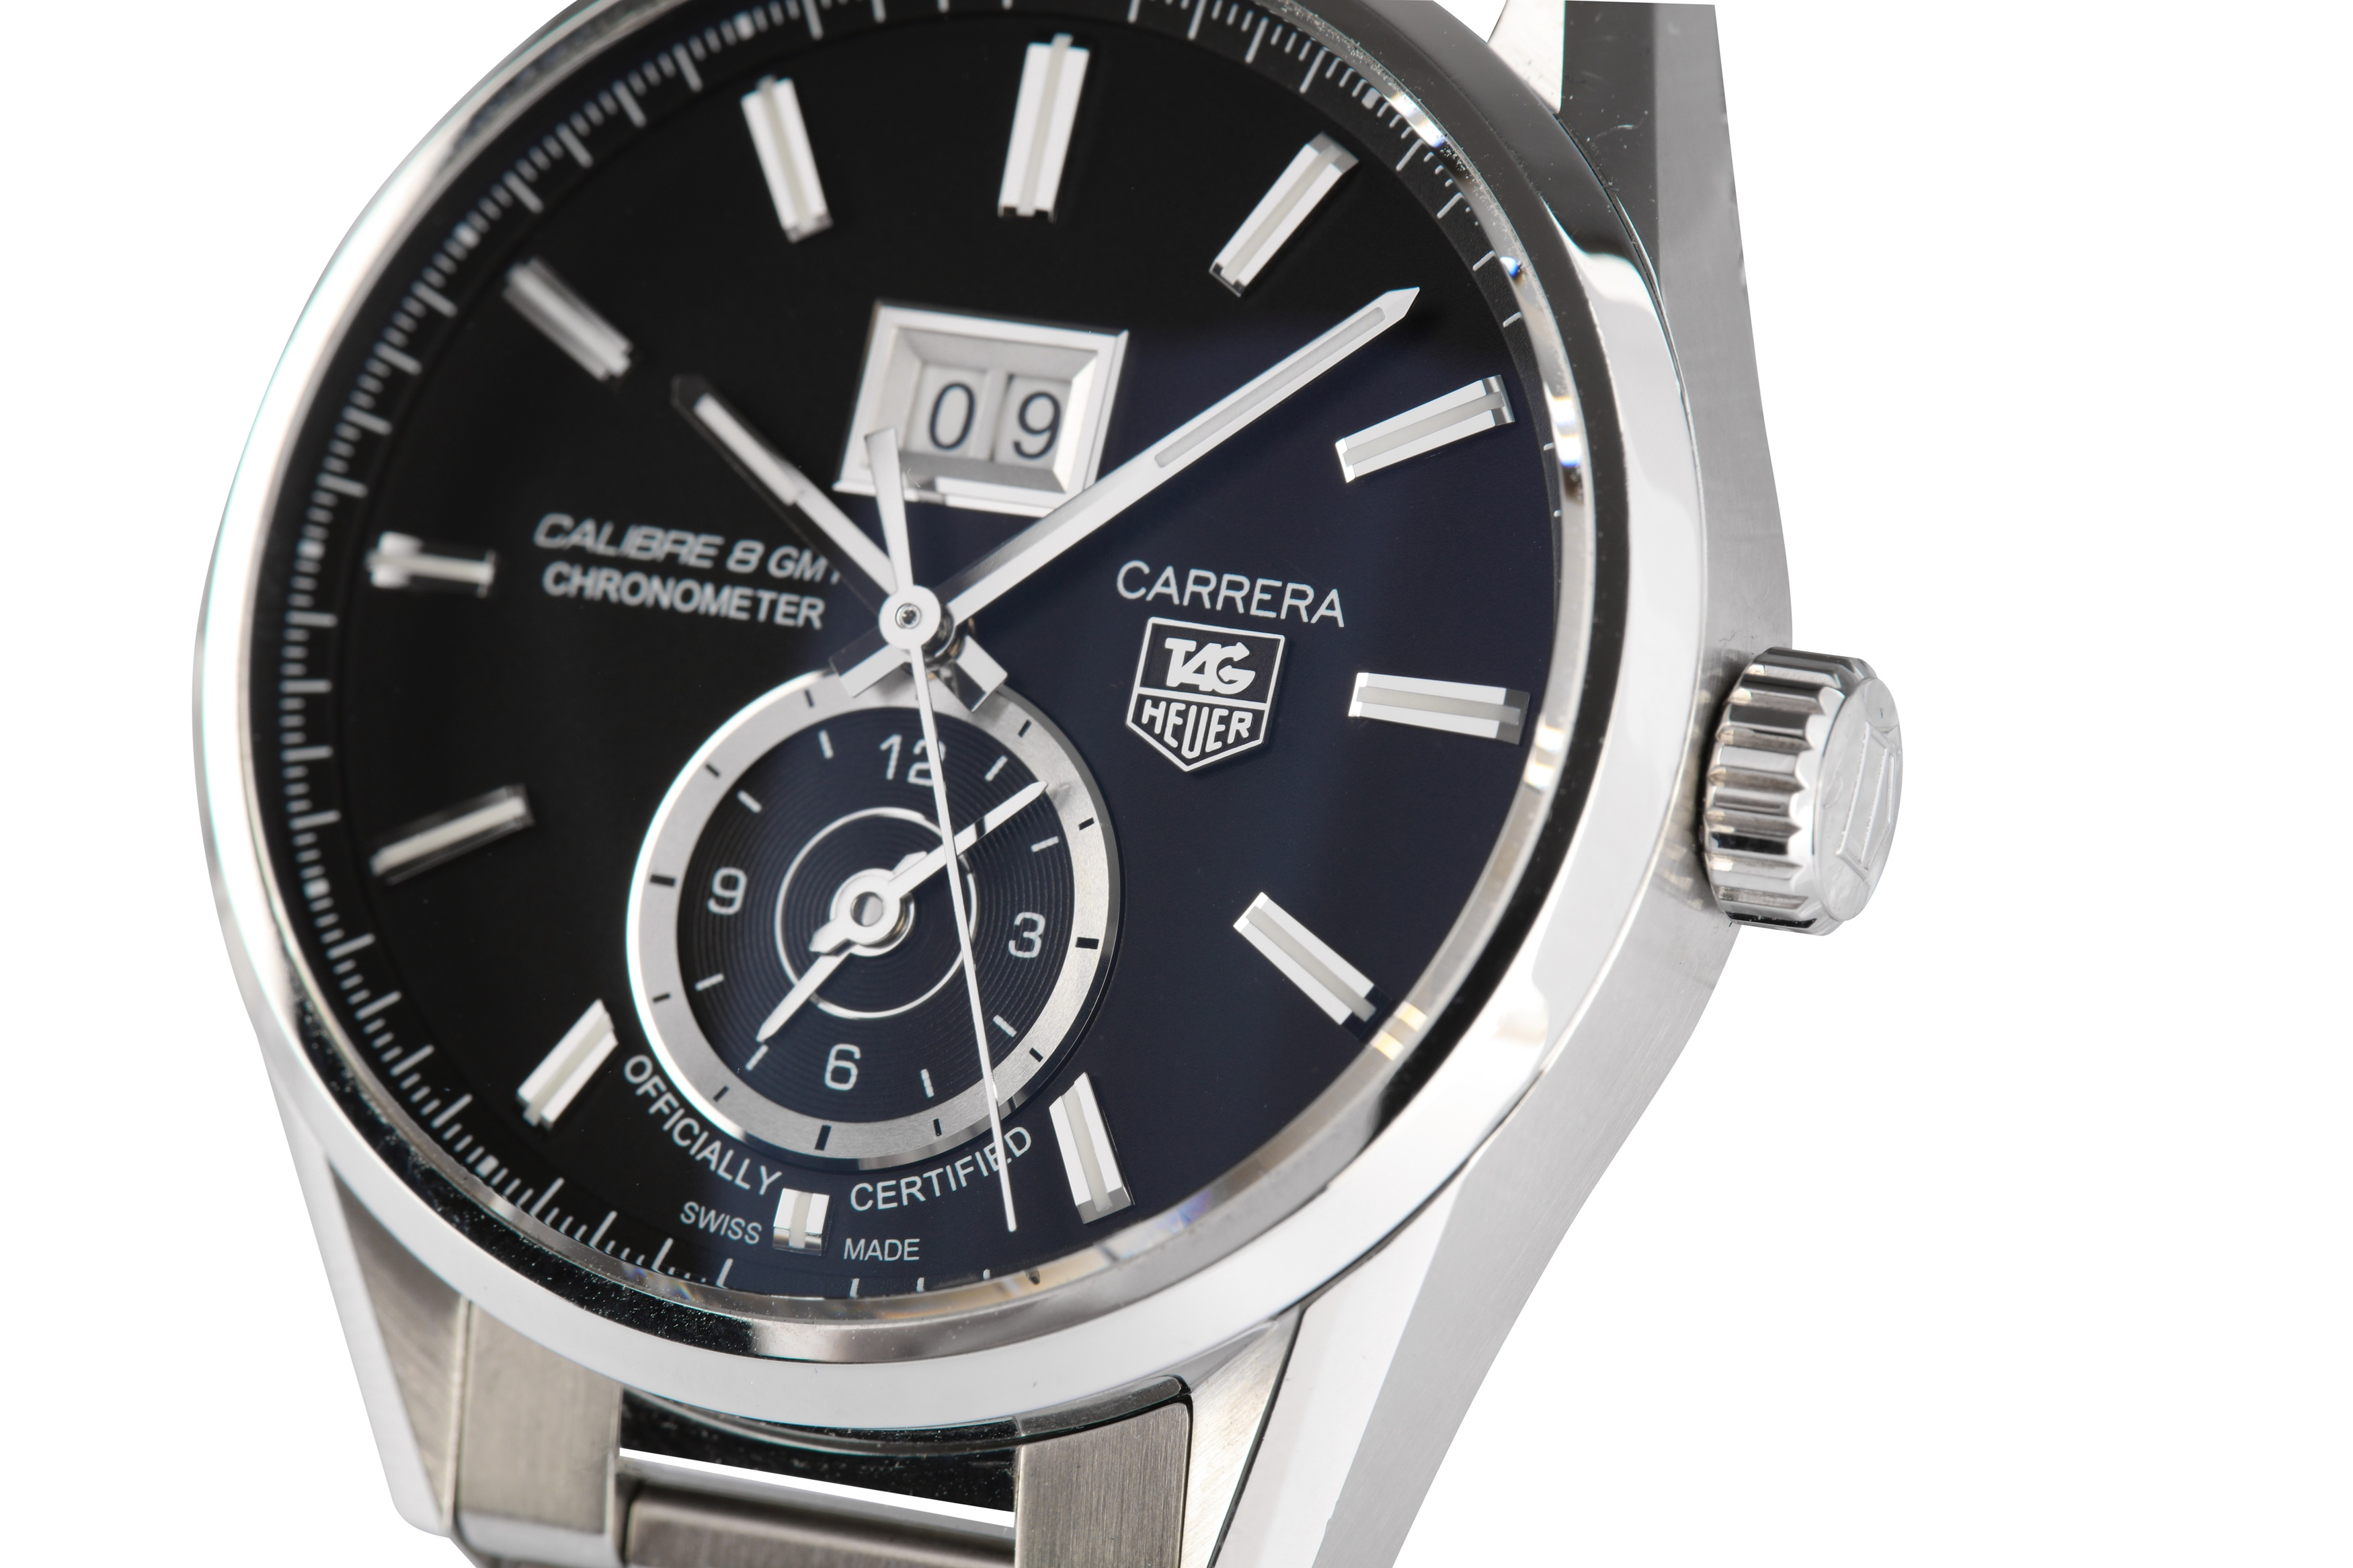 TAG HEUER - Image 3 of 7